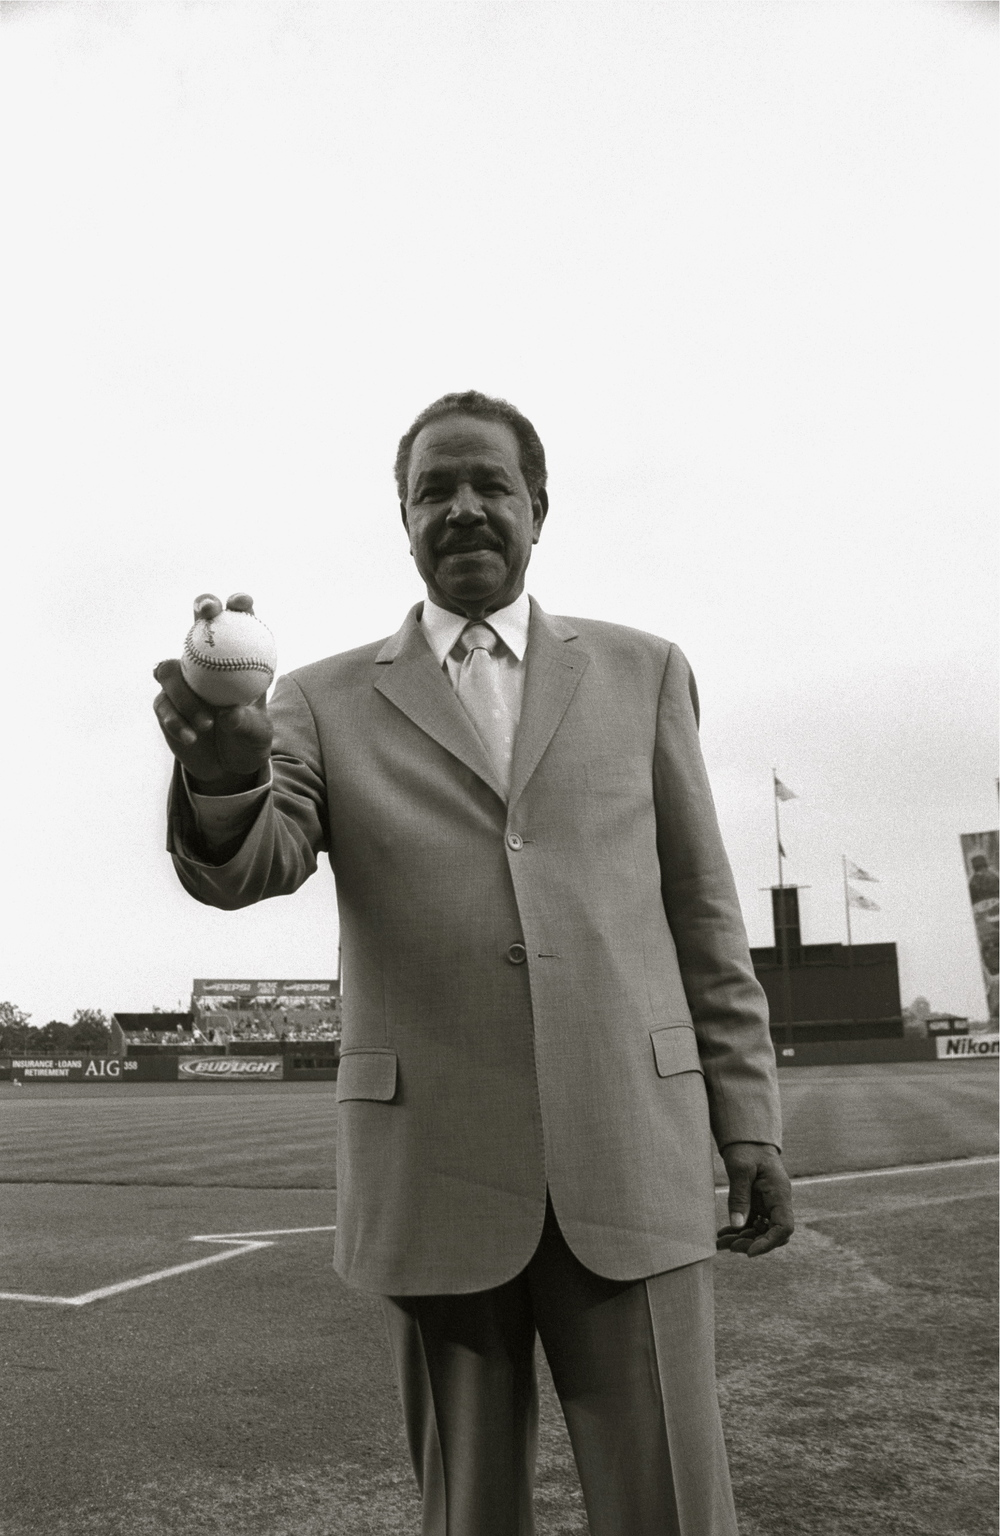 Baseball Hall of Famer, Juan Marichal